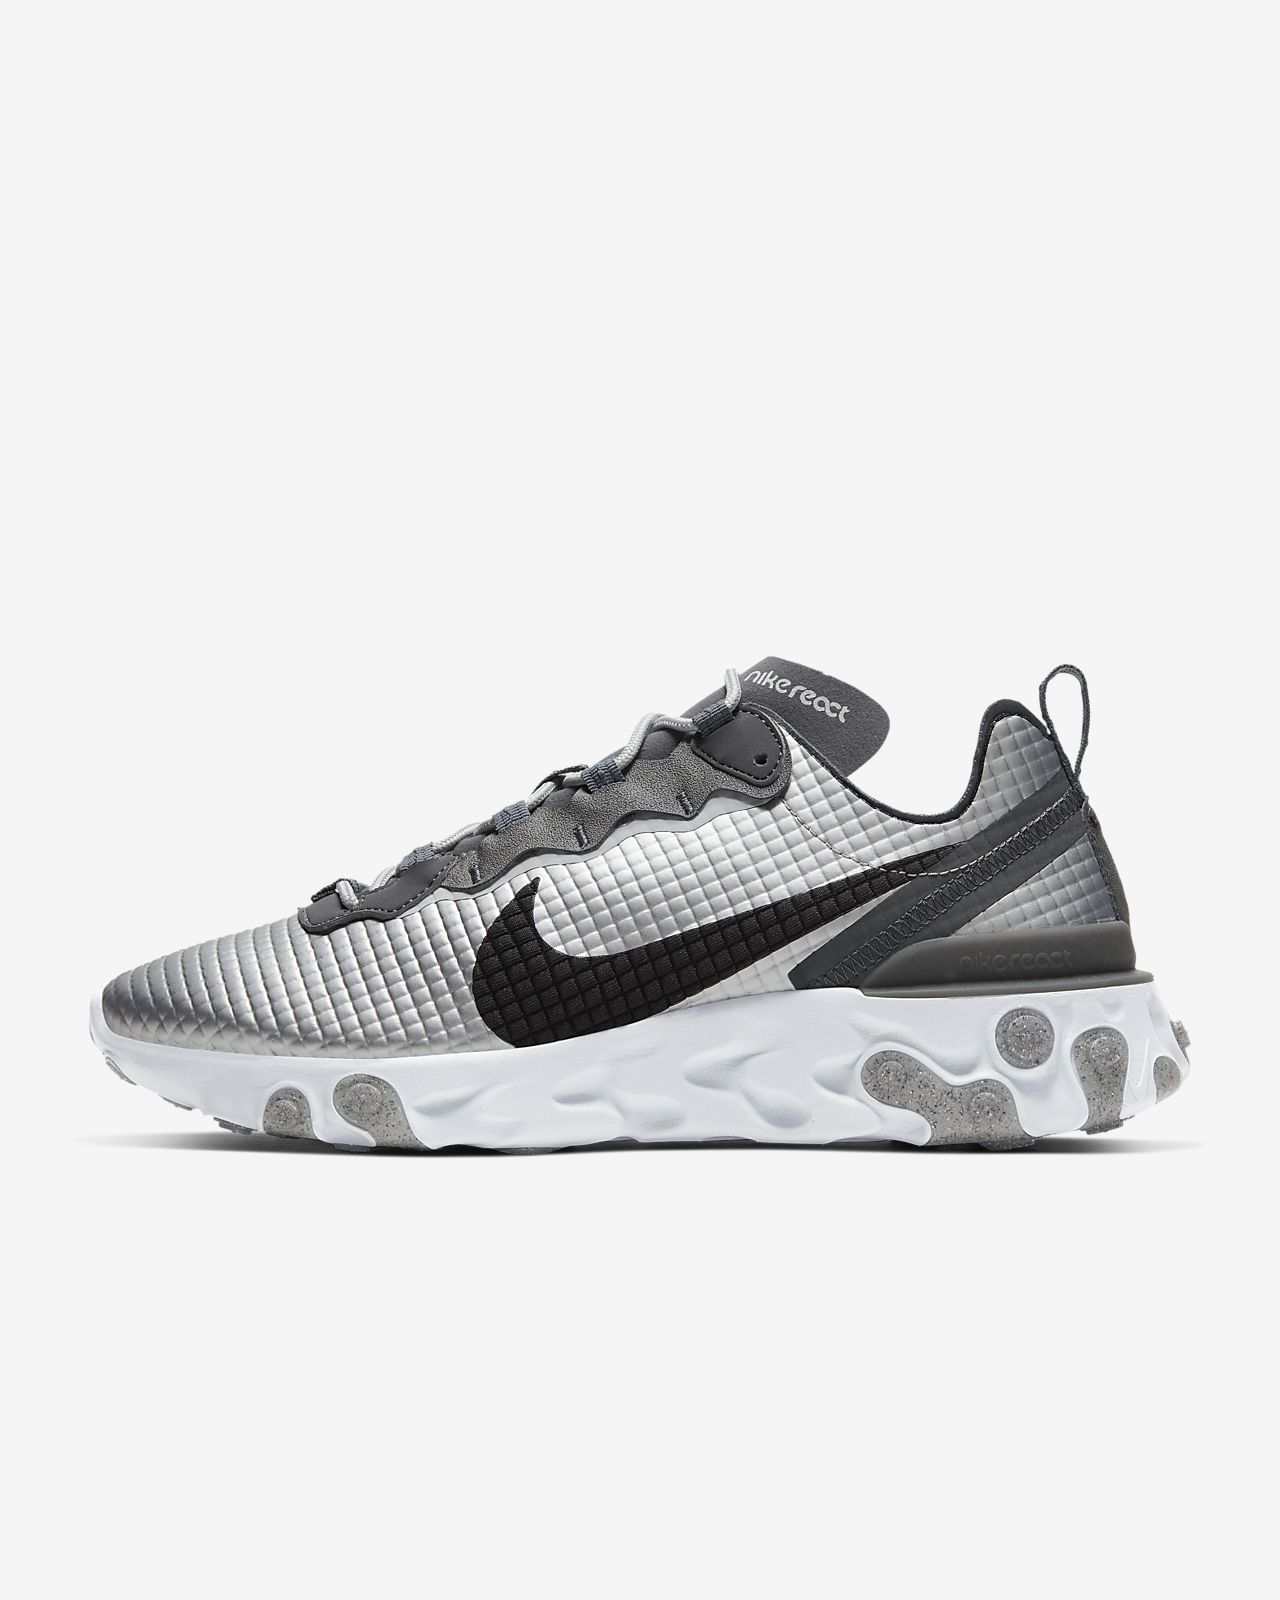 nike 170 chaussure femme